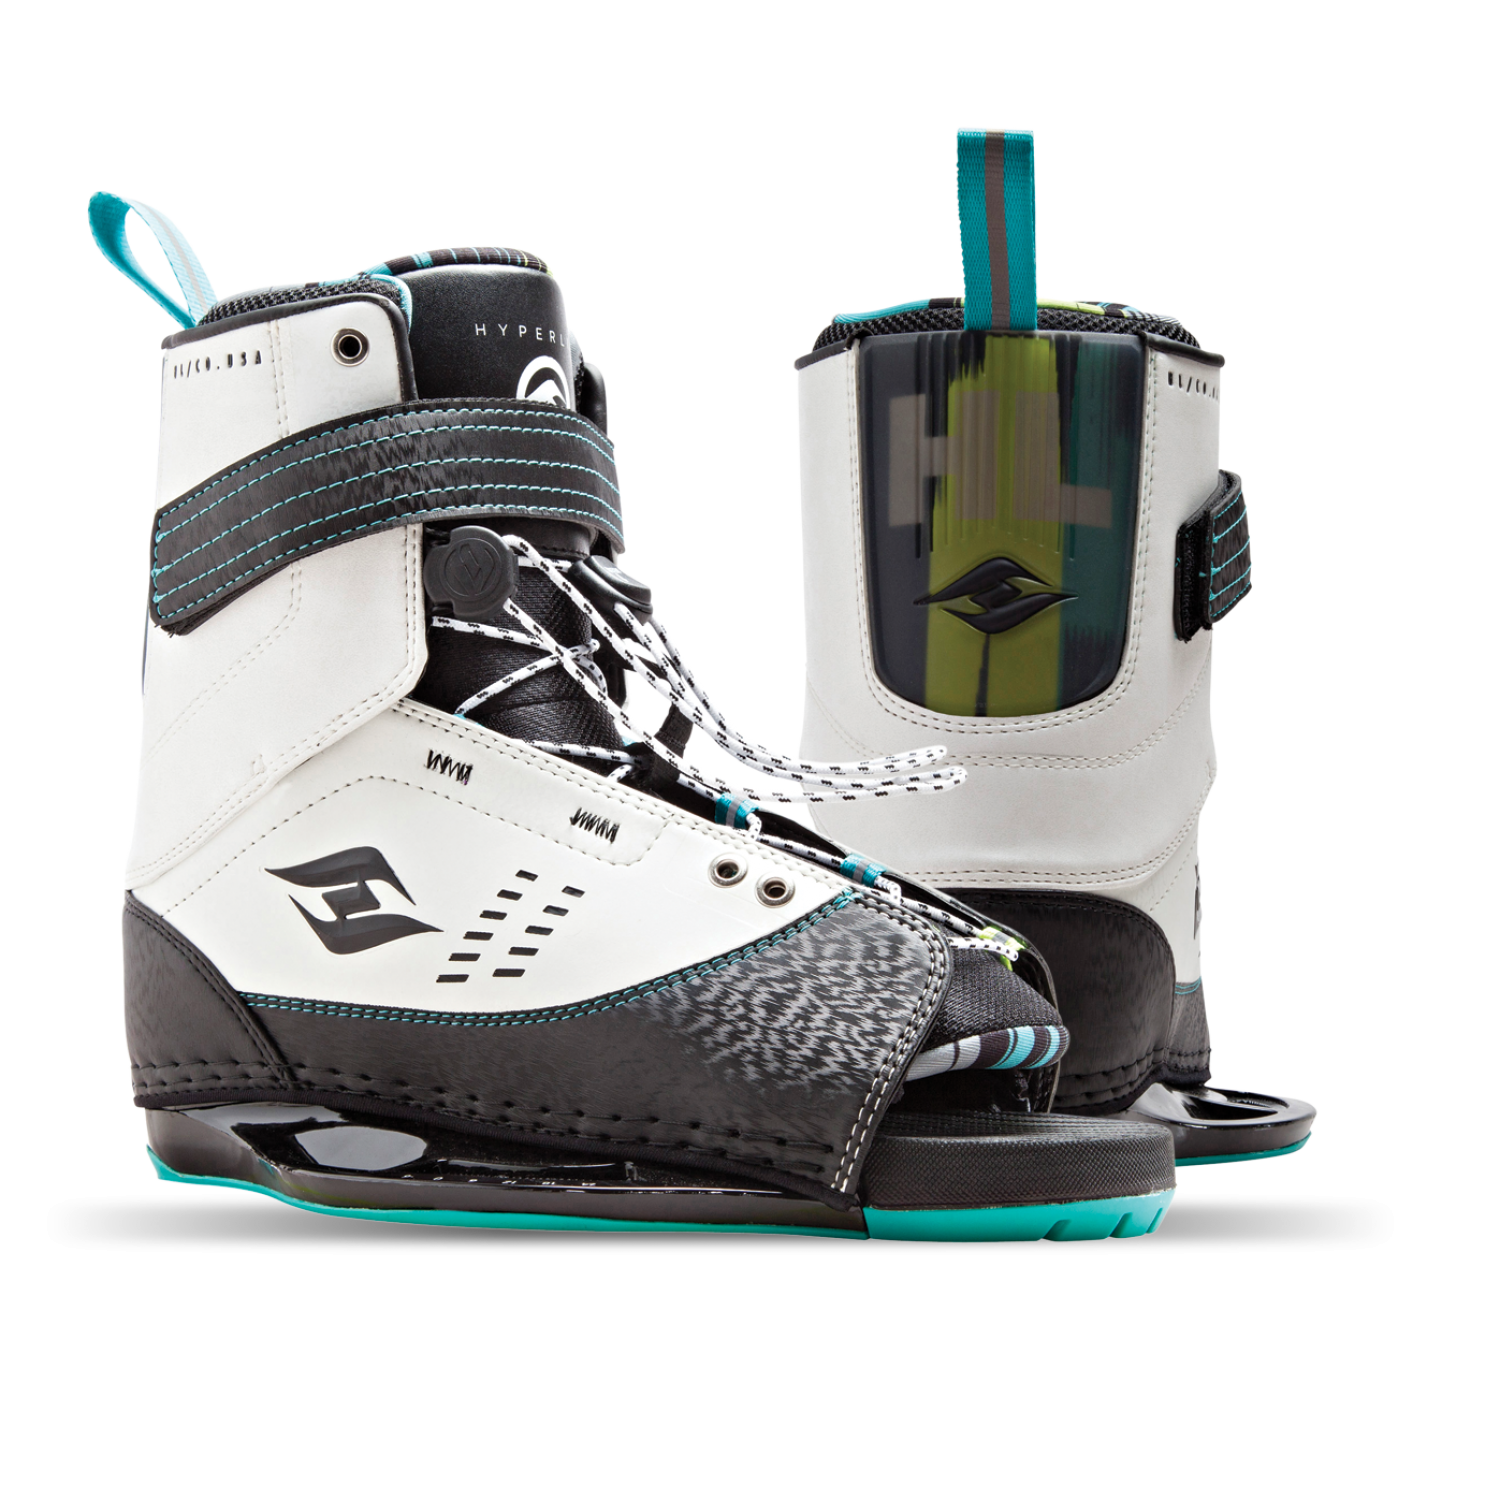 Open Toe Vs. Closed Toe Bindings